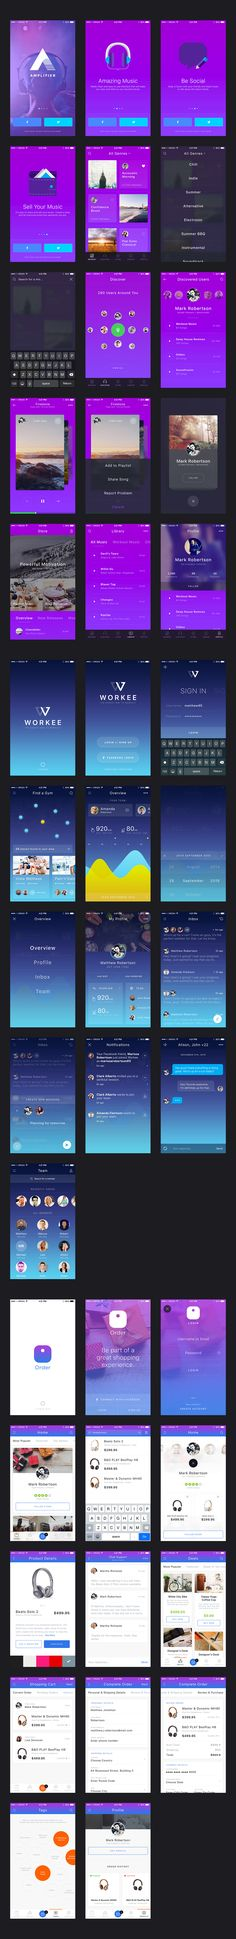 iPhone mobile app UI design kit for music, workout and e-commerce for iOS.